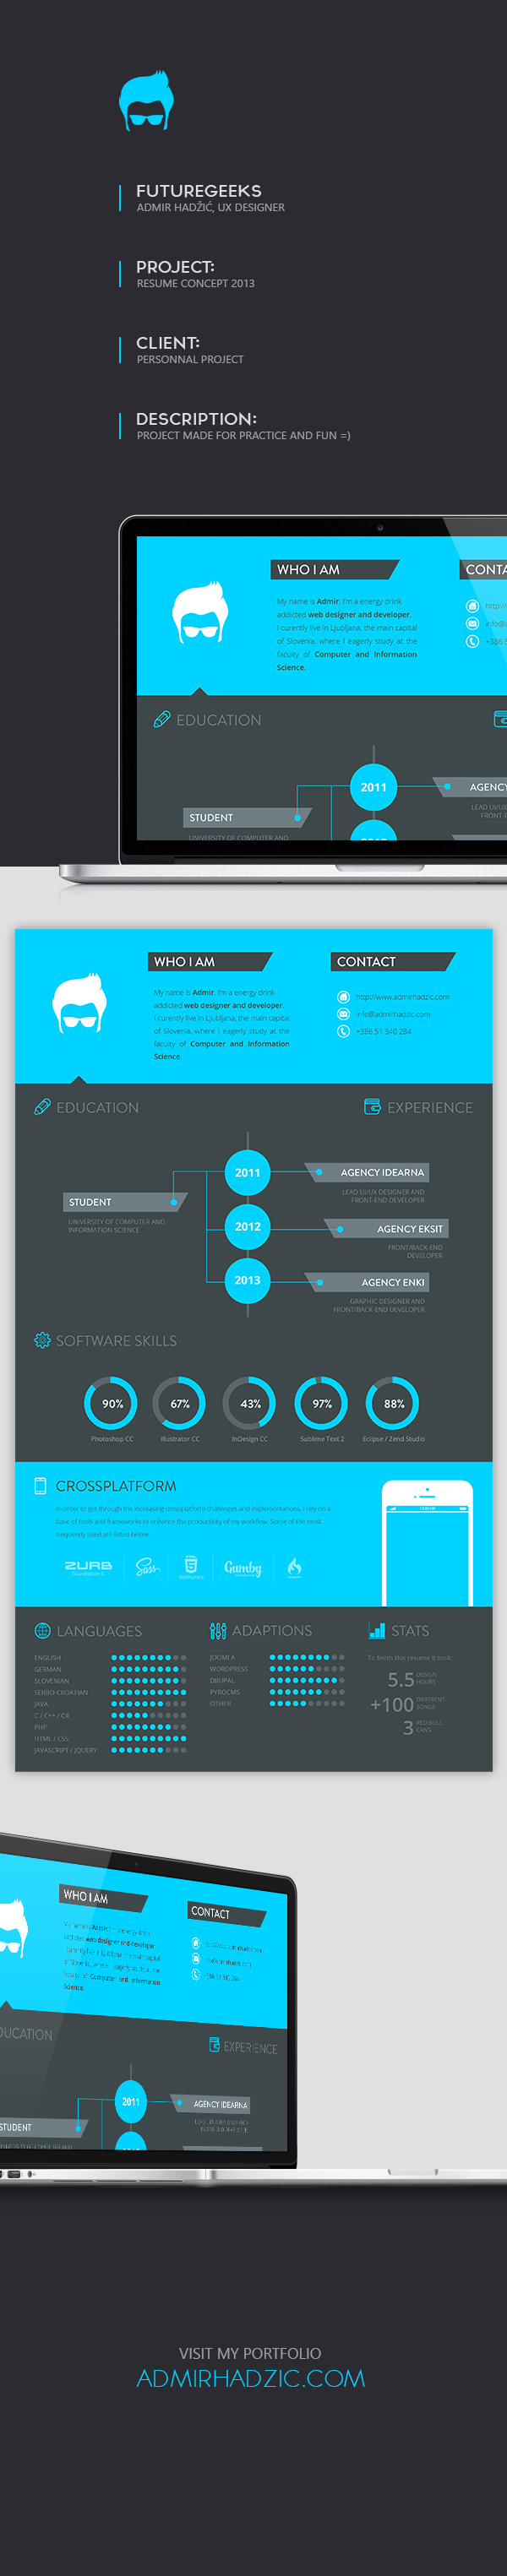 20 cool resume cv designs resume cv infographic resume and